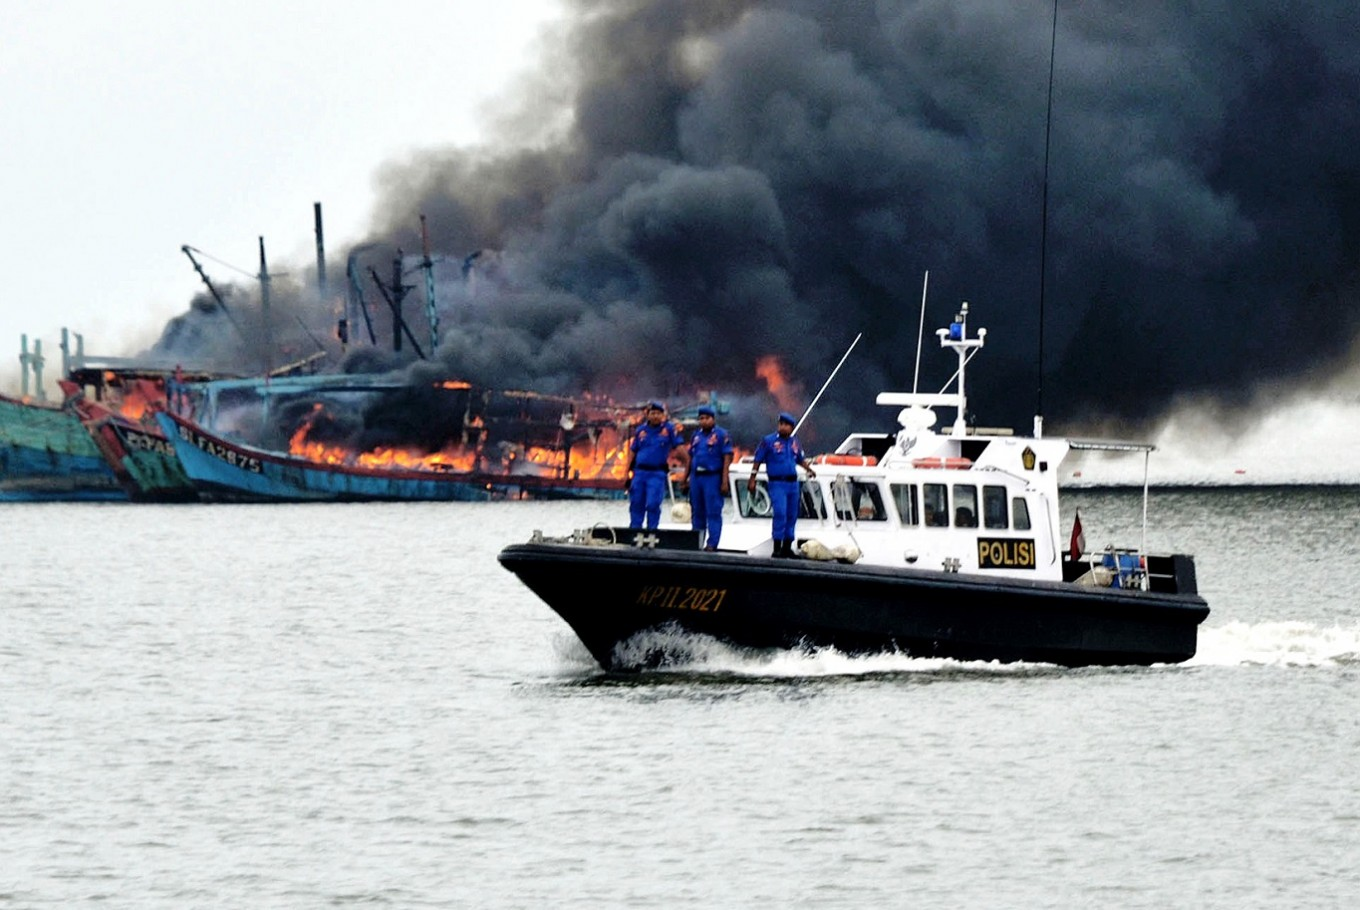 Minister Susi Declares Ship Sinking Policy Success